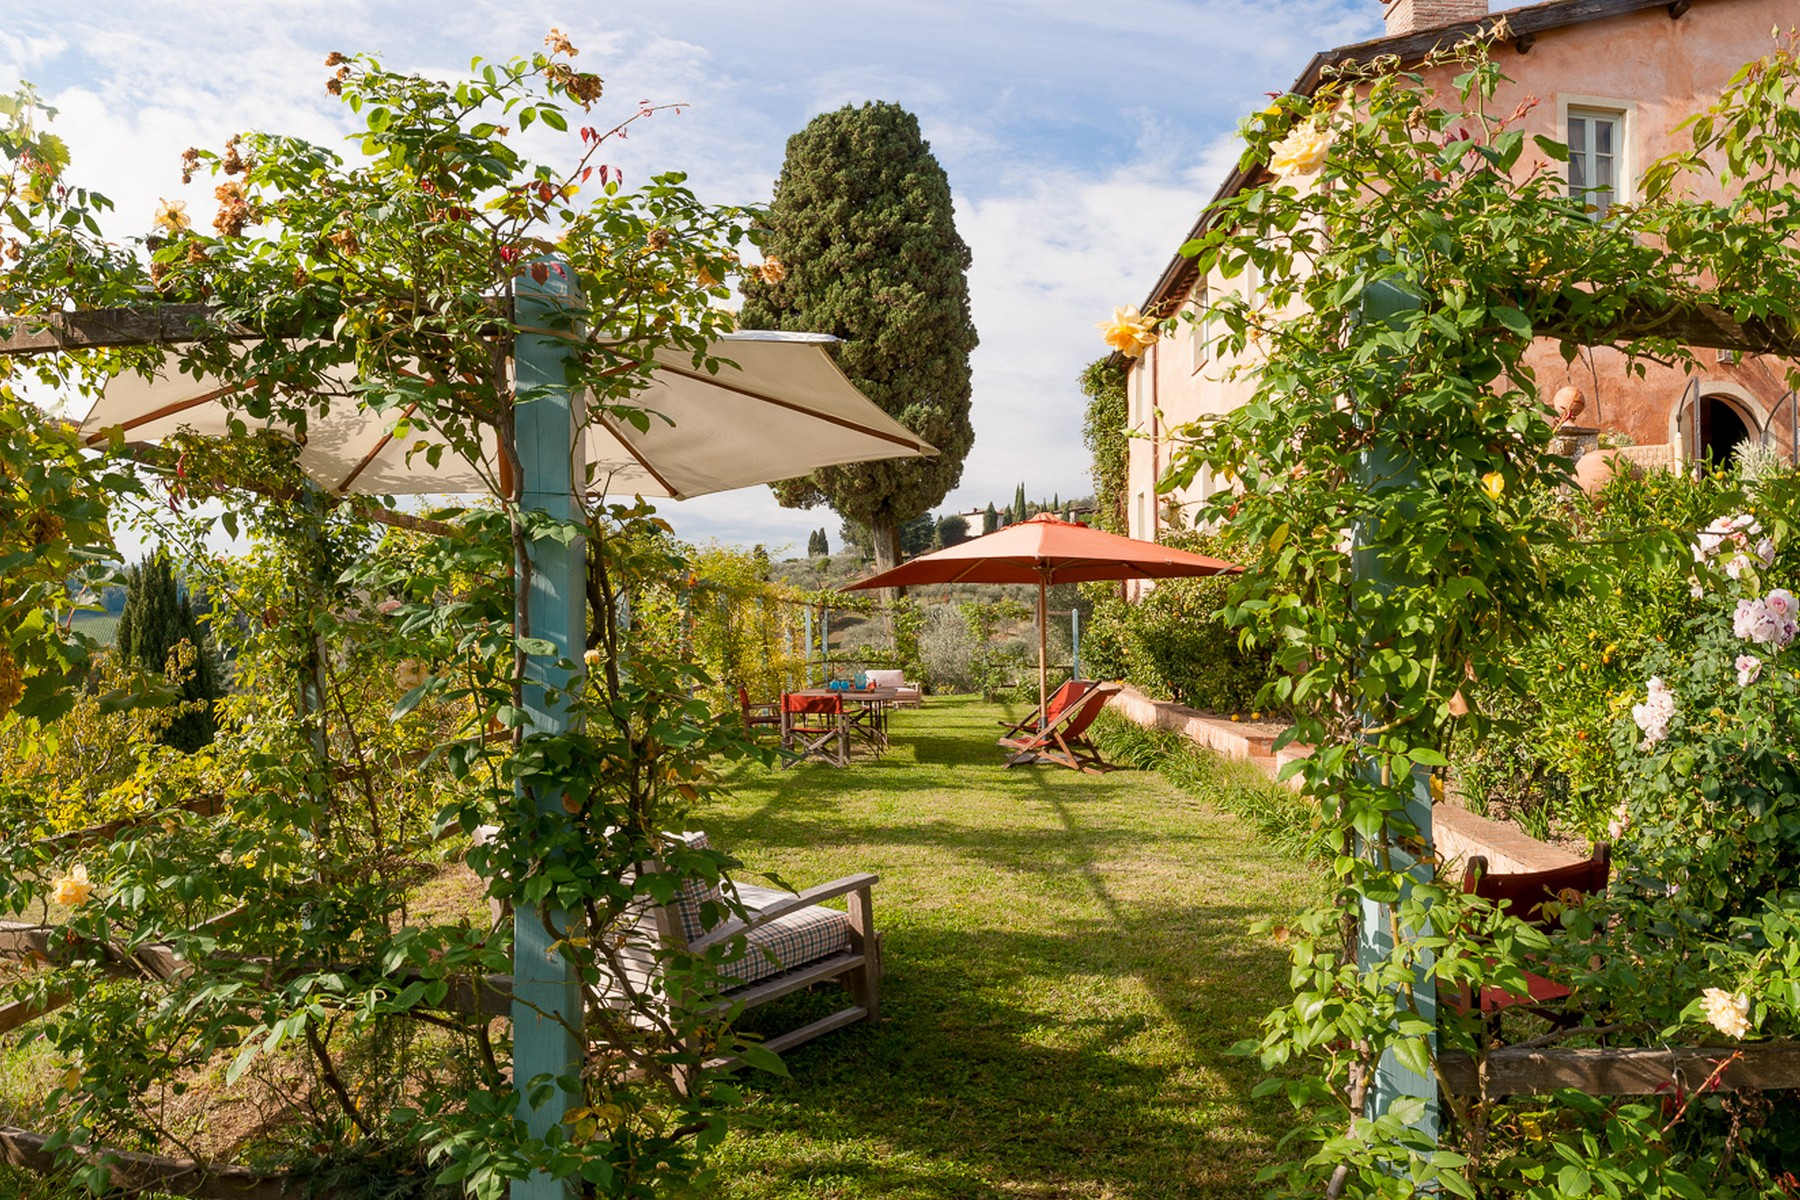 Additional photo for property listing at Merveilleuse ferme avec un incroyable jardin dans la campagne de Lucca Via di Mutigliano Lucca, Lucca 55100 Italie